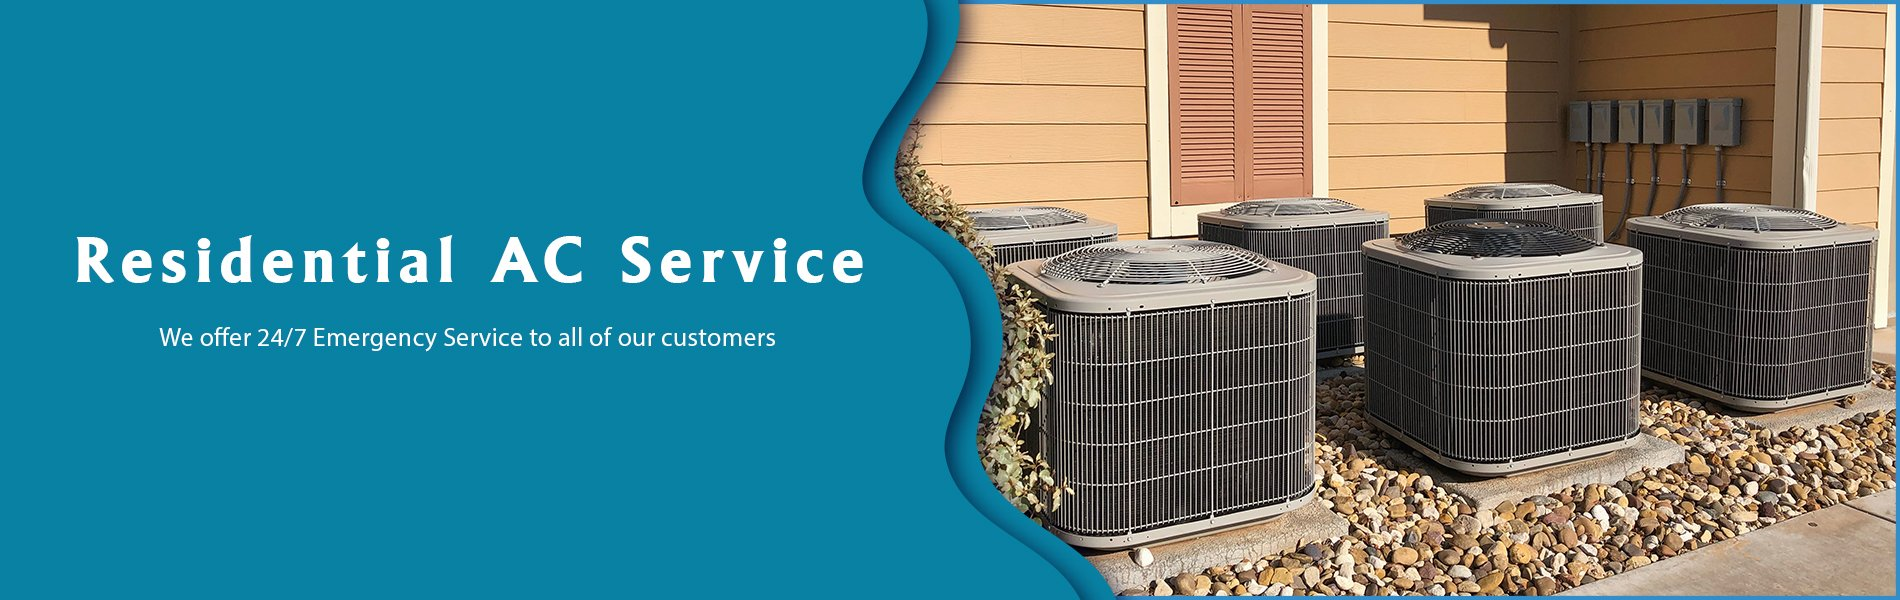 Miami Beach AC Services, Miami Beach, FL 786-584-8037